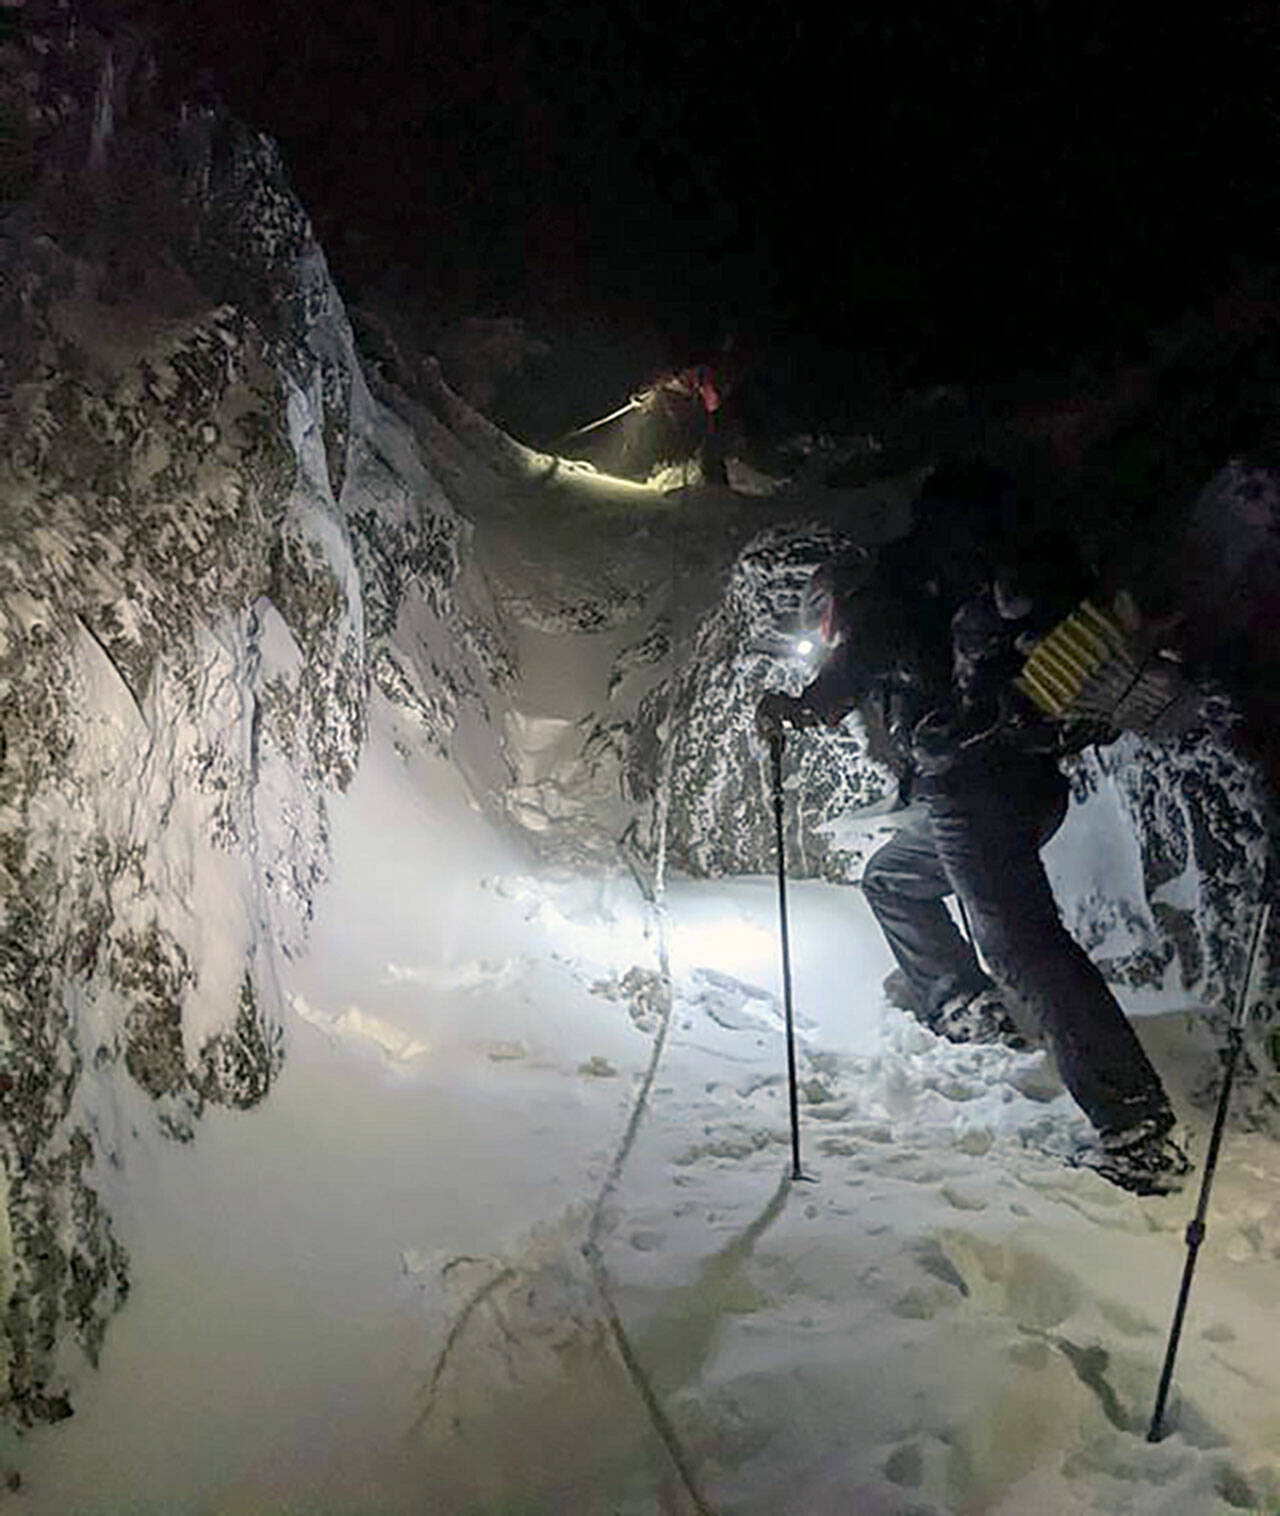 The Snohomish County Sheriff's Office Search and Rescue unit and volunteers from Snohomish County Volunteer Search and Rescue completed a 20-hour overnight rescue mission on Three Fingers Mountain at about 7 a.m. Monday. (Snohomish County Sheriff's Office)